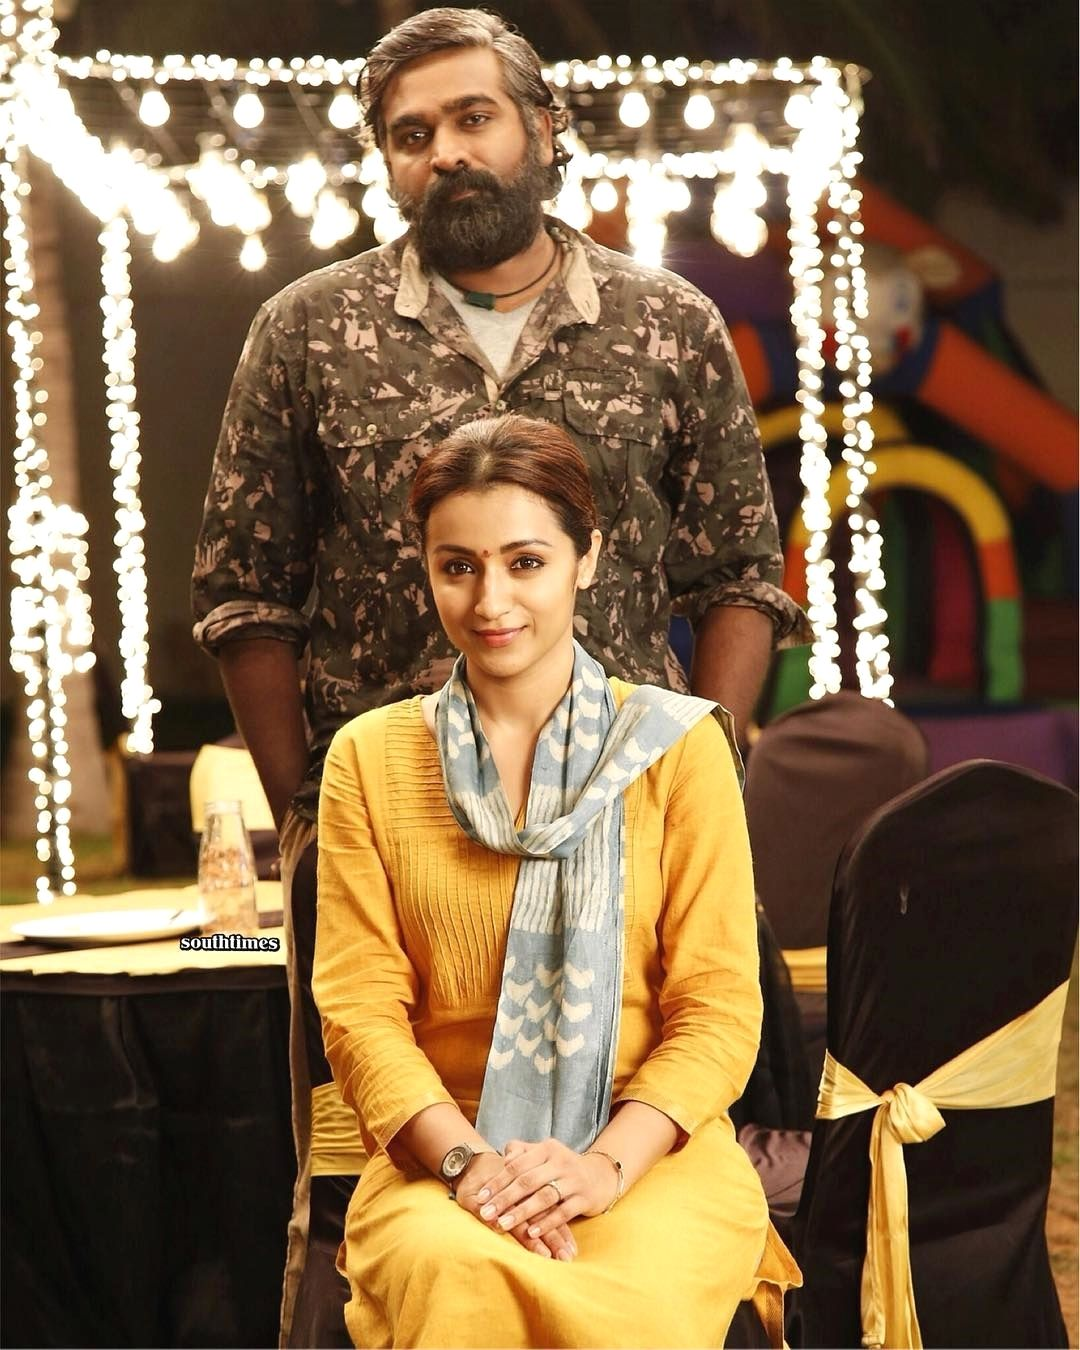 0125487fa21 Thoughts on 96 (no spoilers) :96 directed by Premkumar opens with the very  beautifully shot,Life of Ram song which brought us into Ram's(Vijay  Sethupathi) ...